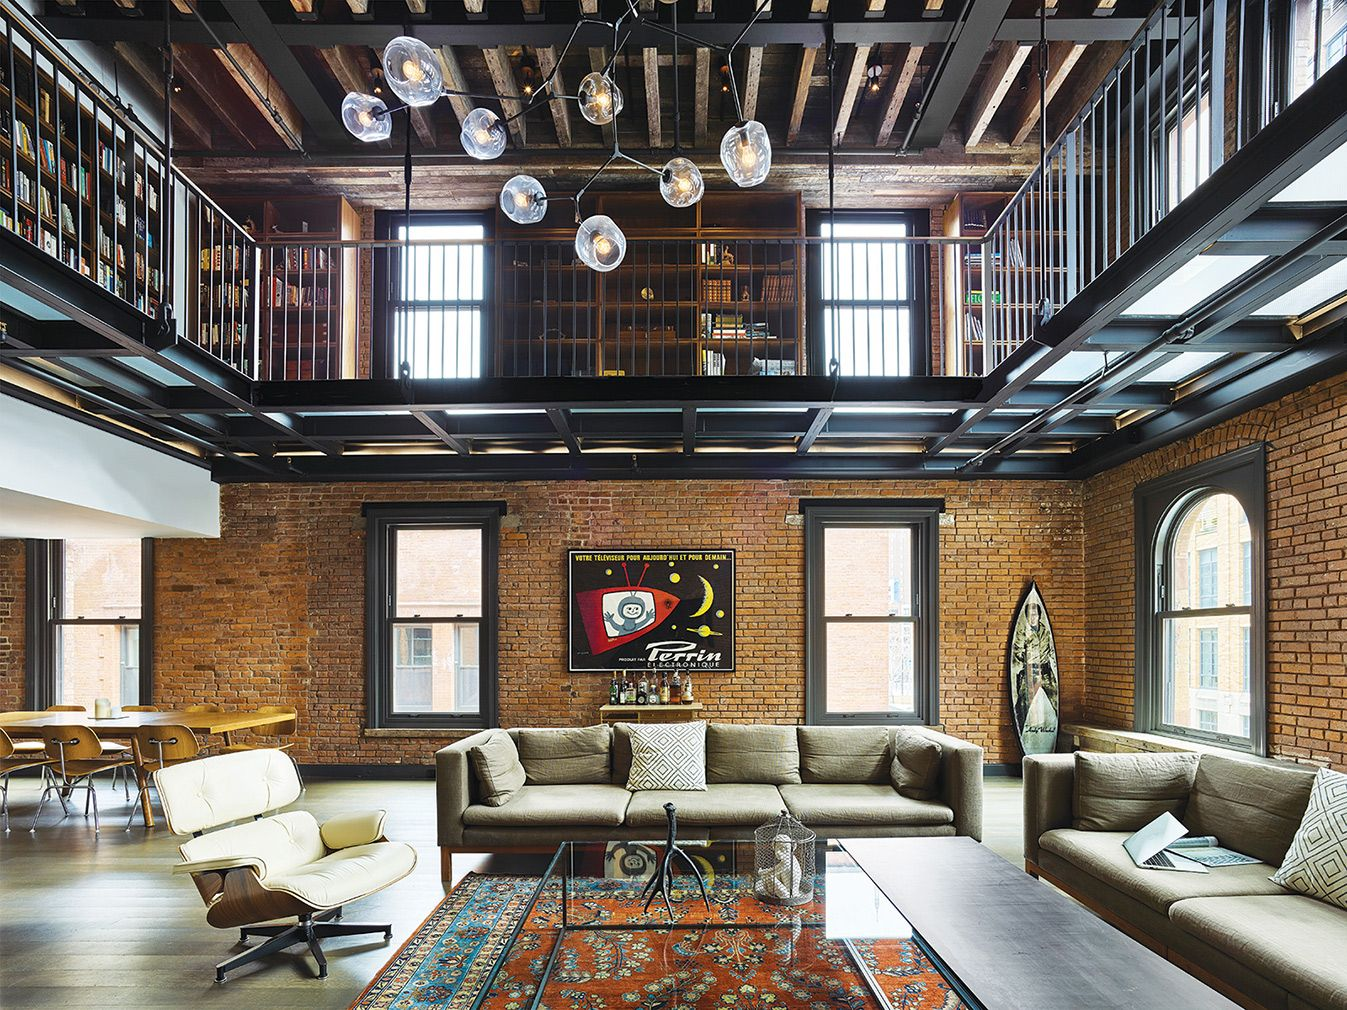 How To Do Warehouse Living In The 21st Century With Images